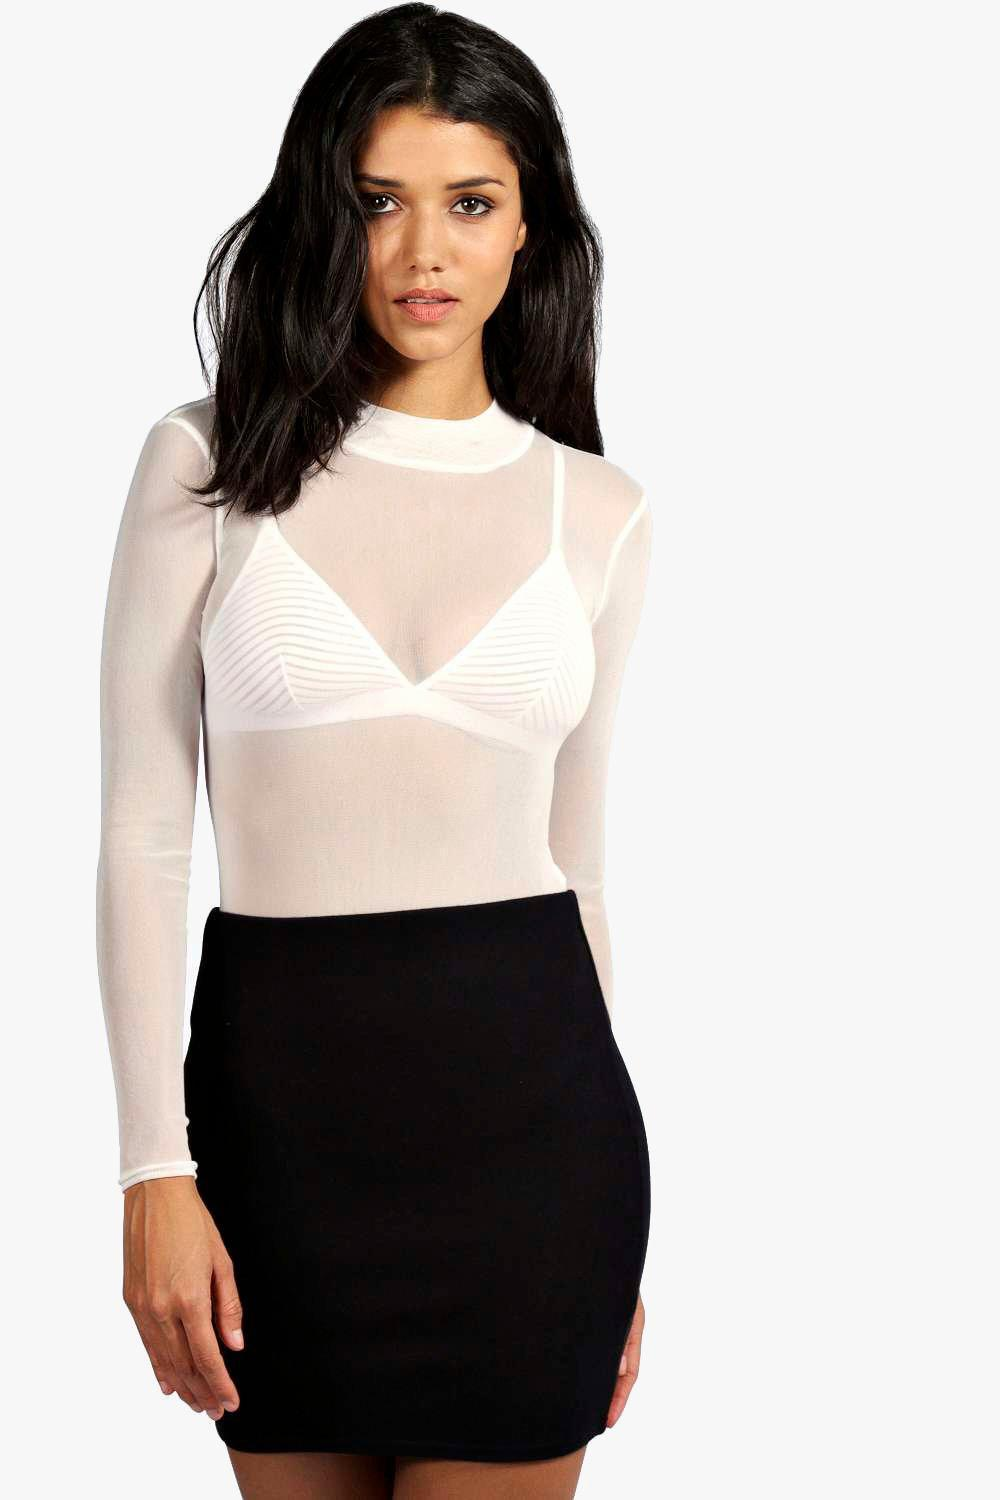 Boohoo Rose Turtle Neck All Over Mesh Bodysuit Discount The Cheapest 1NW0NMl